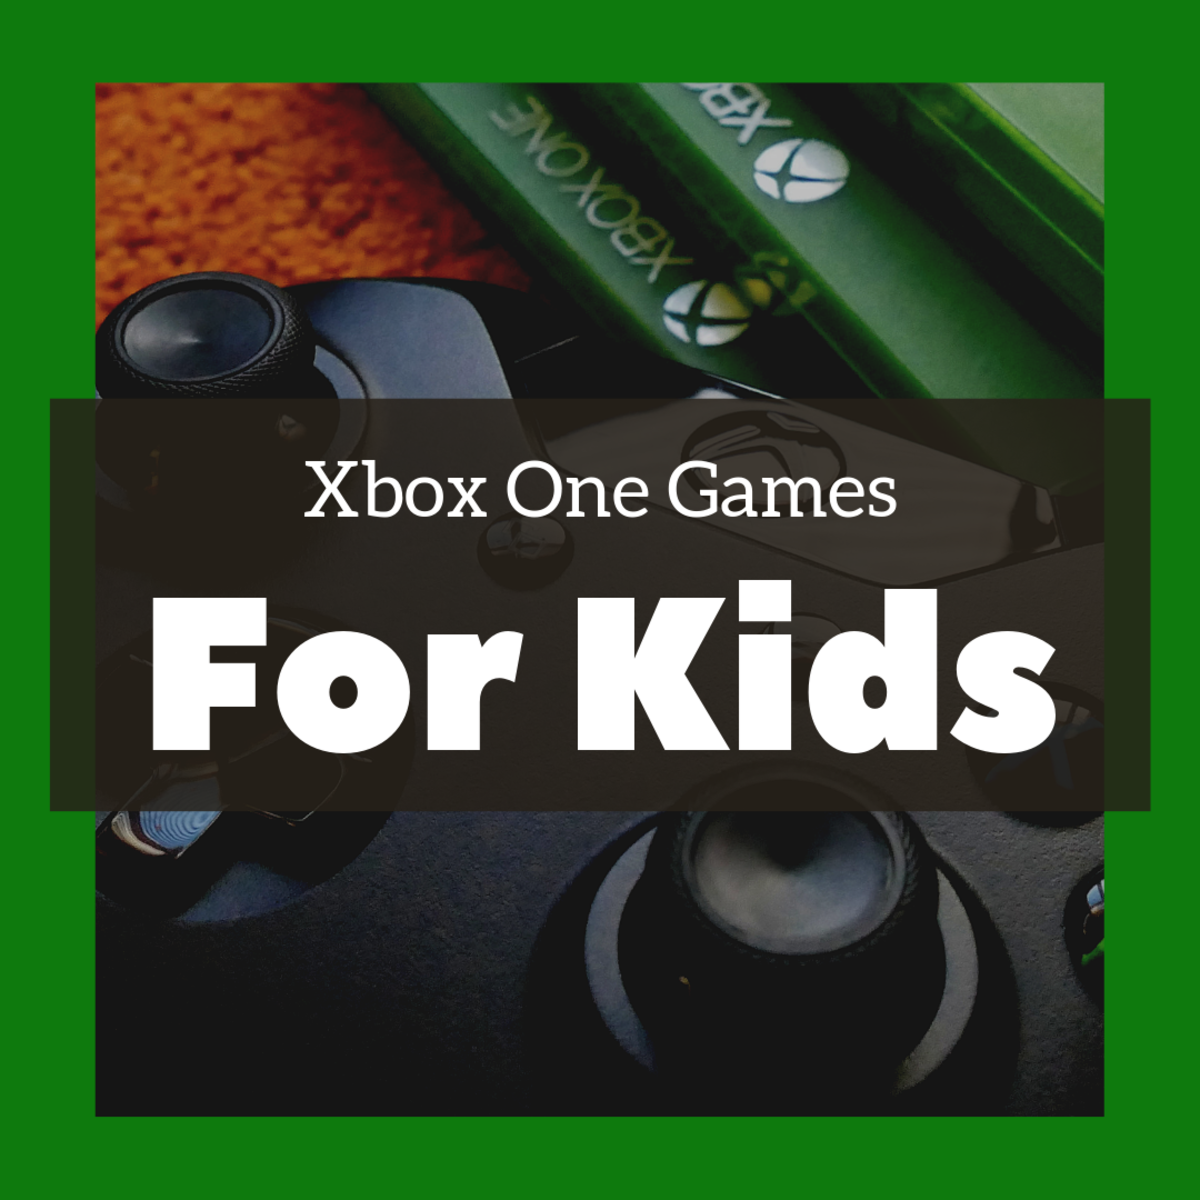 The Xbox One is a fairly inclusive console for people of all ages.